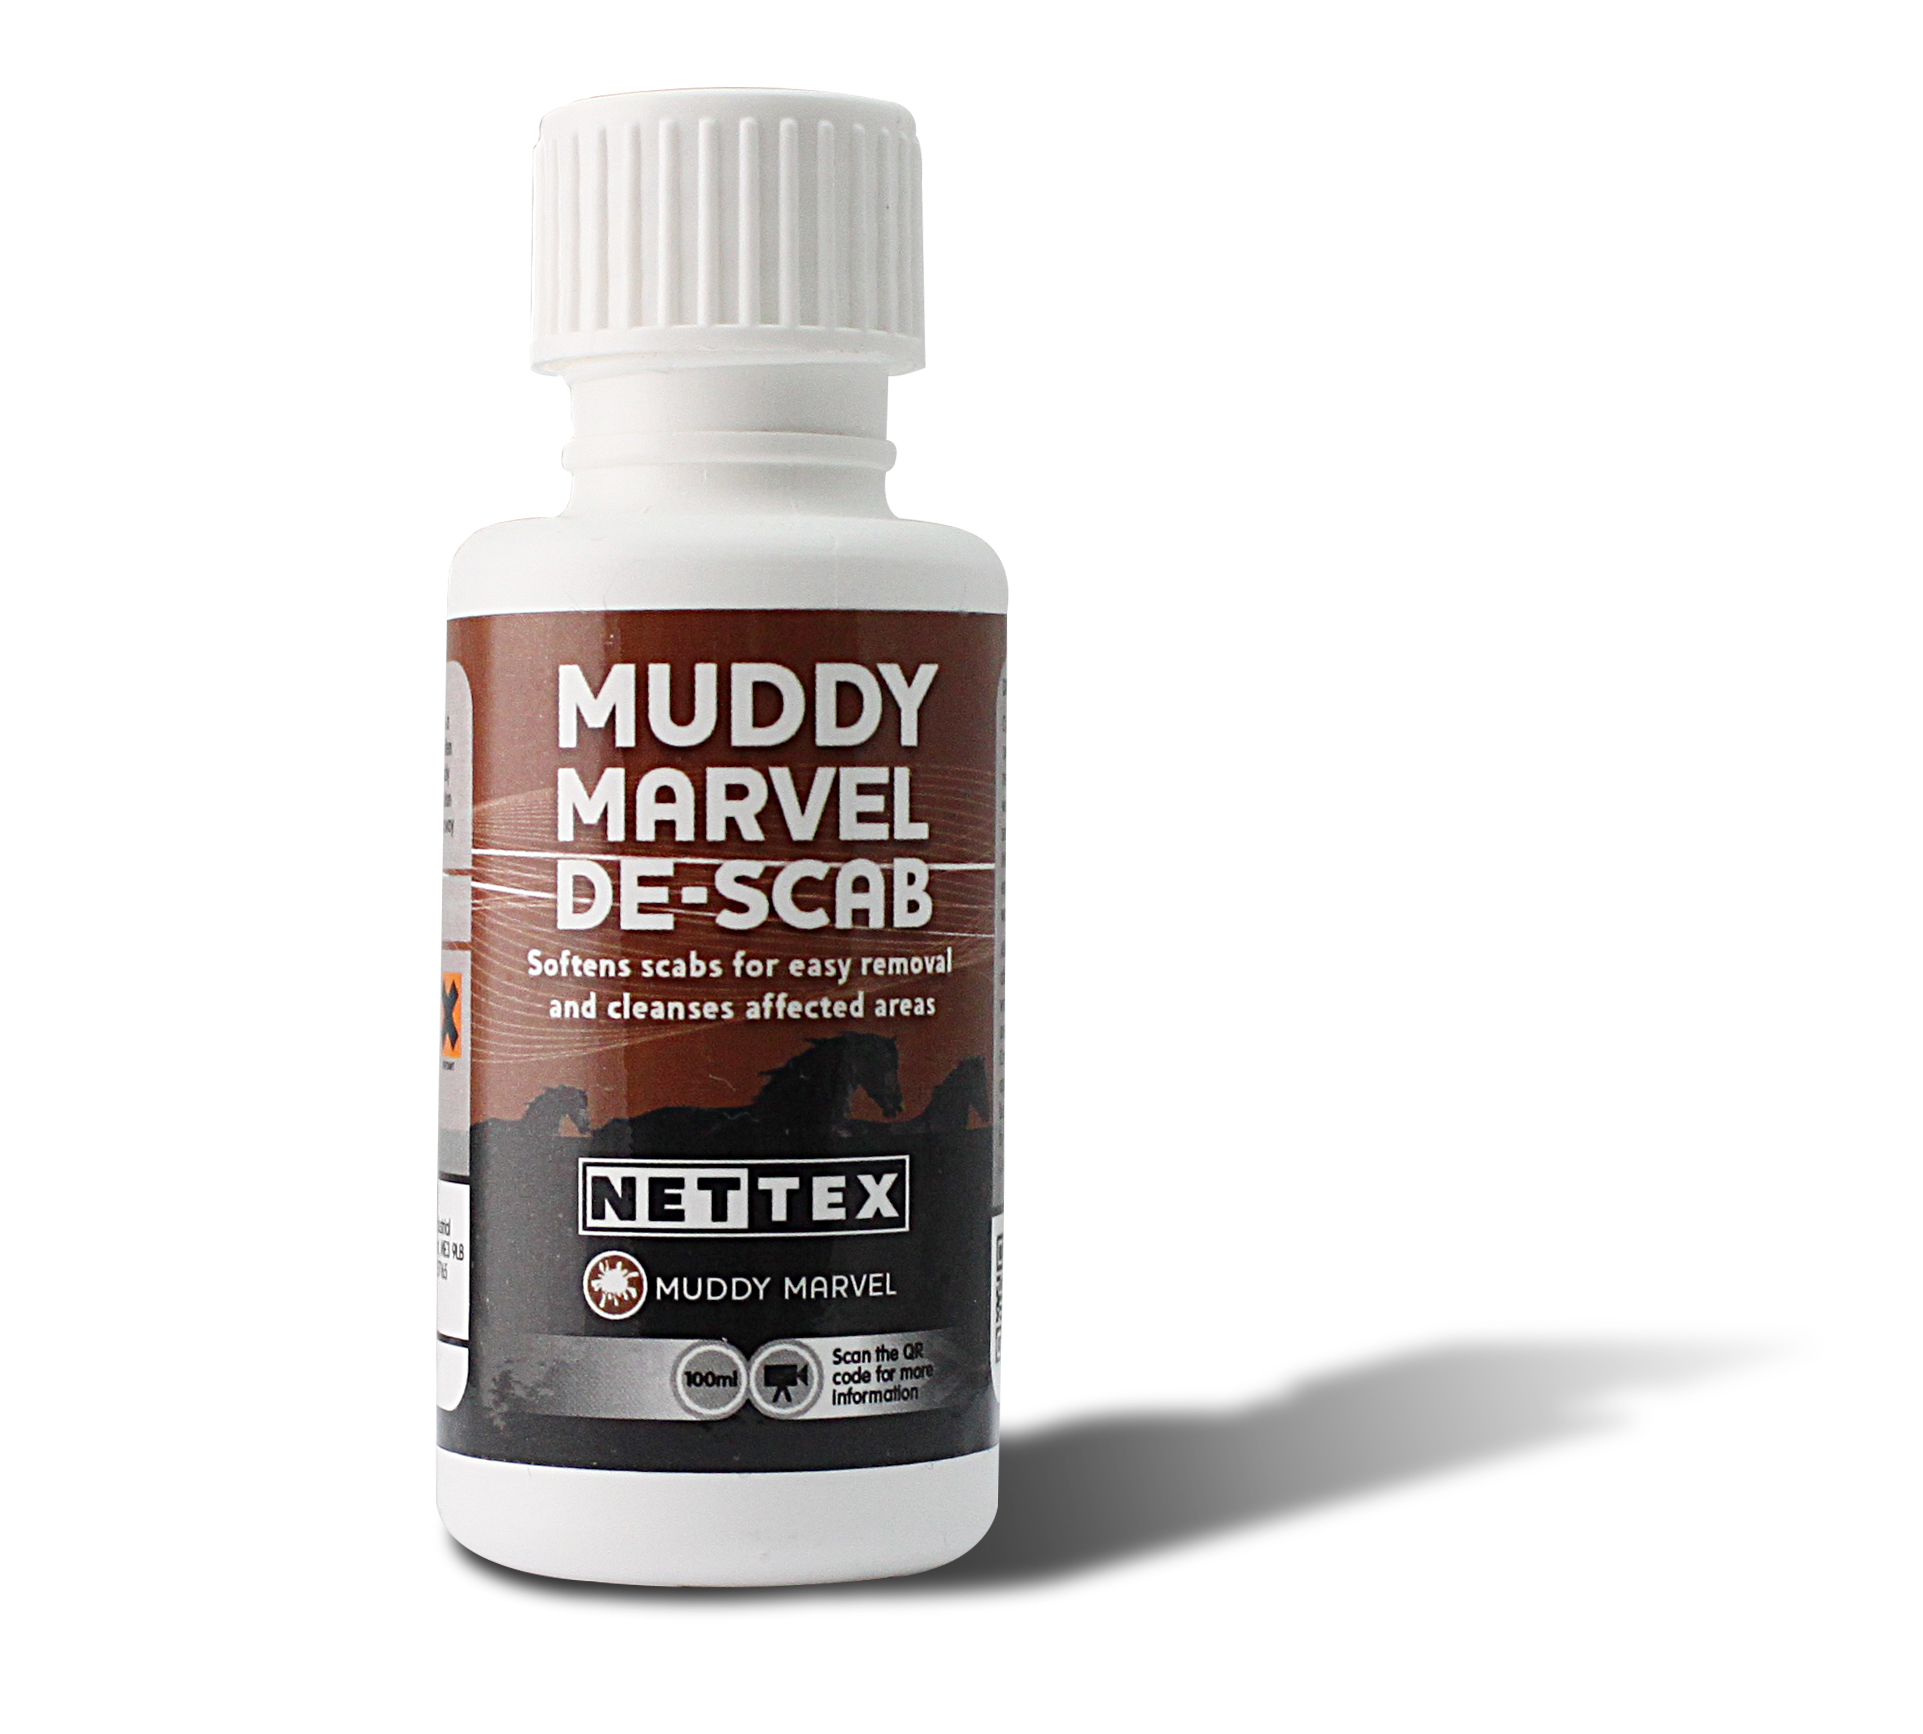 Net-Tex Muddy Marvel De-Scab for Horses